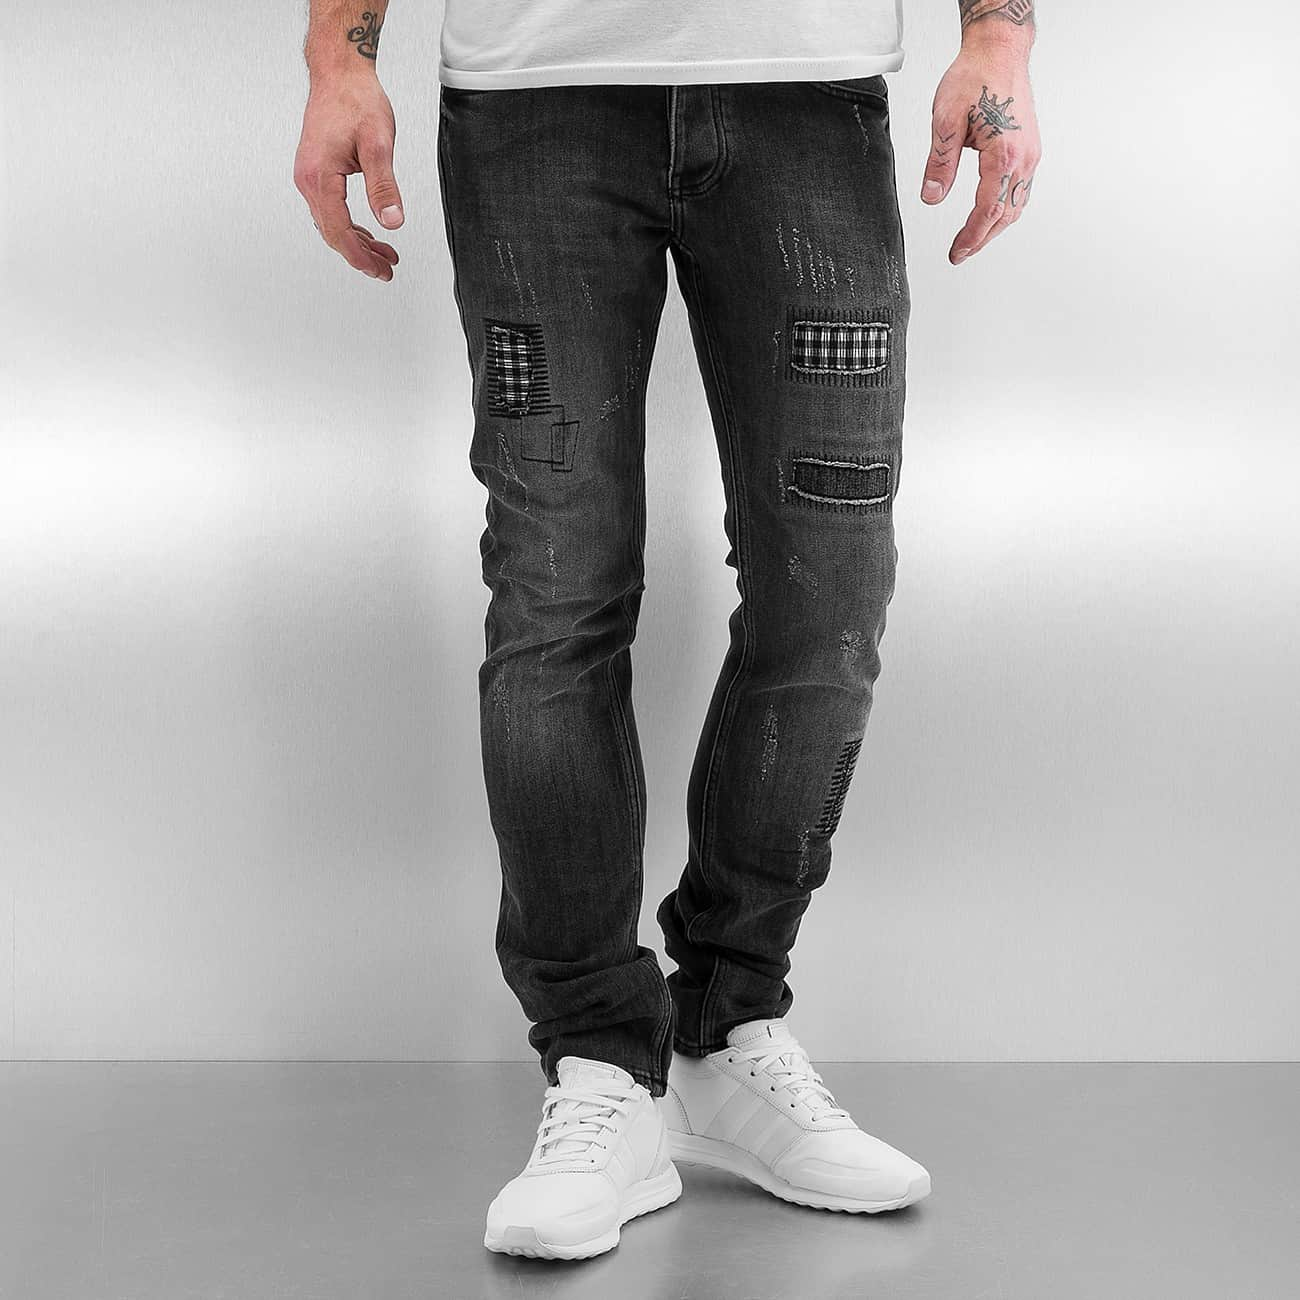 2Y / Skinny Jeans Patchwork in gray - Streetscenter